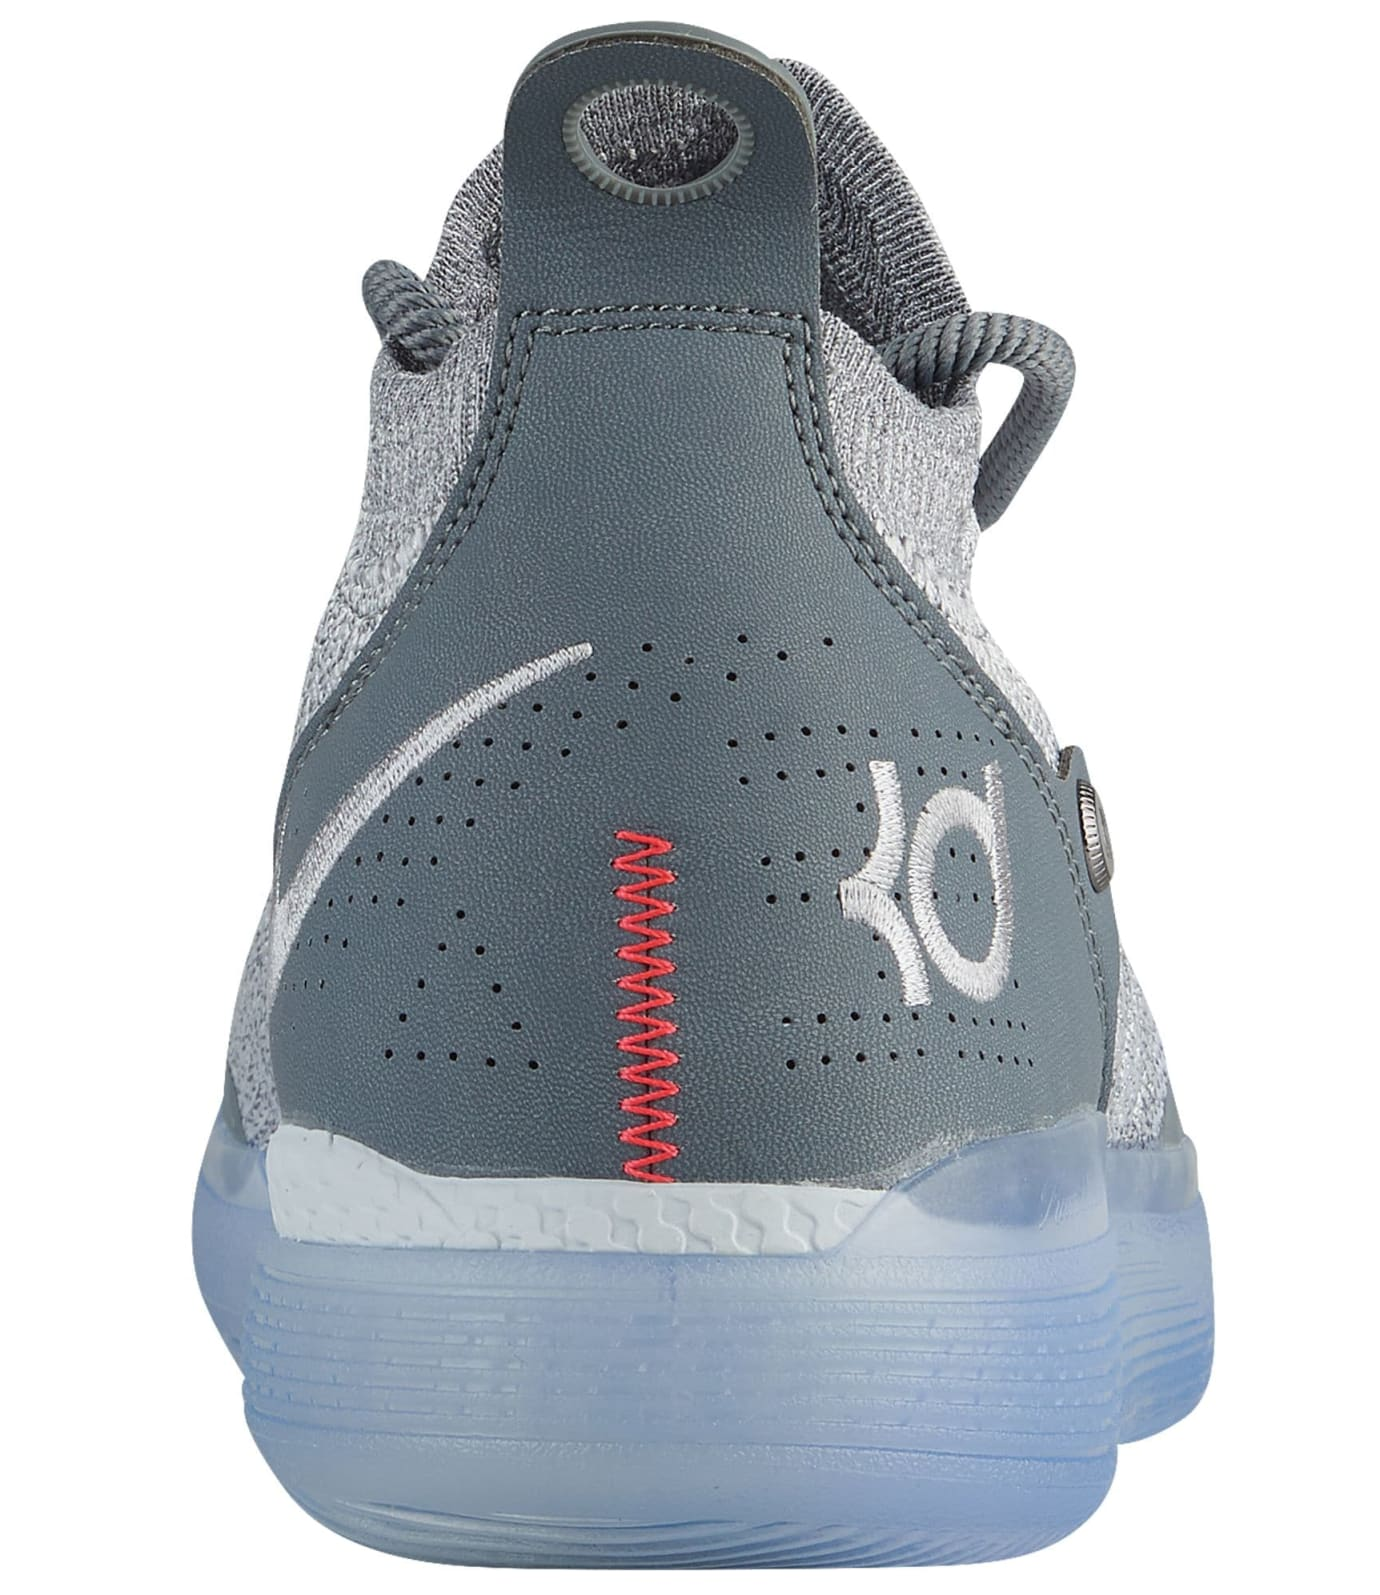 0e4a3660d Image via Foot Locker nike-kd-11-cool-grey-ao2604-002-heel